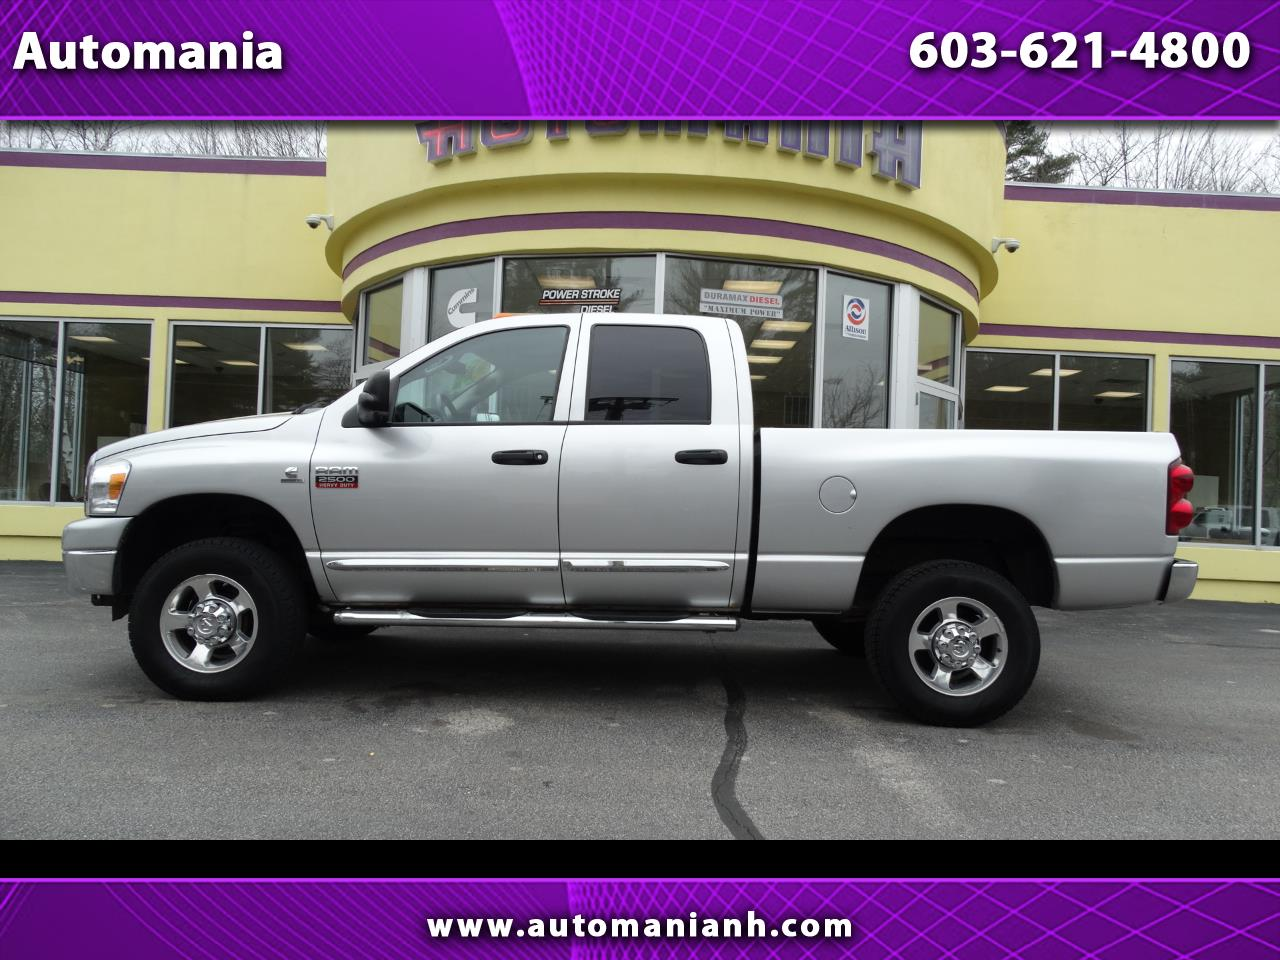 2008 Dodge Ram 2500 CUMMINS QUAD CAB SHORT BED 4WD DIESEL